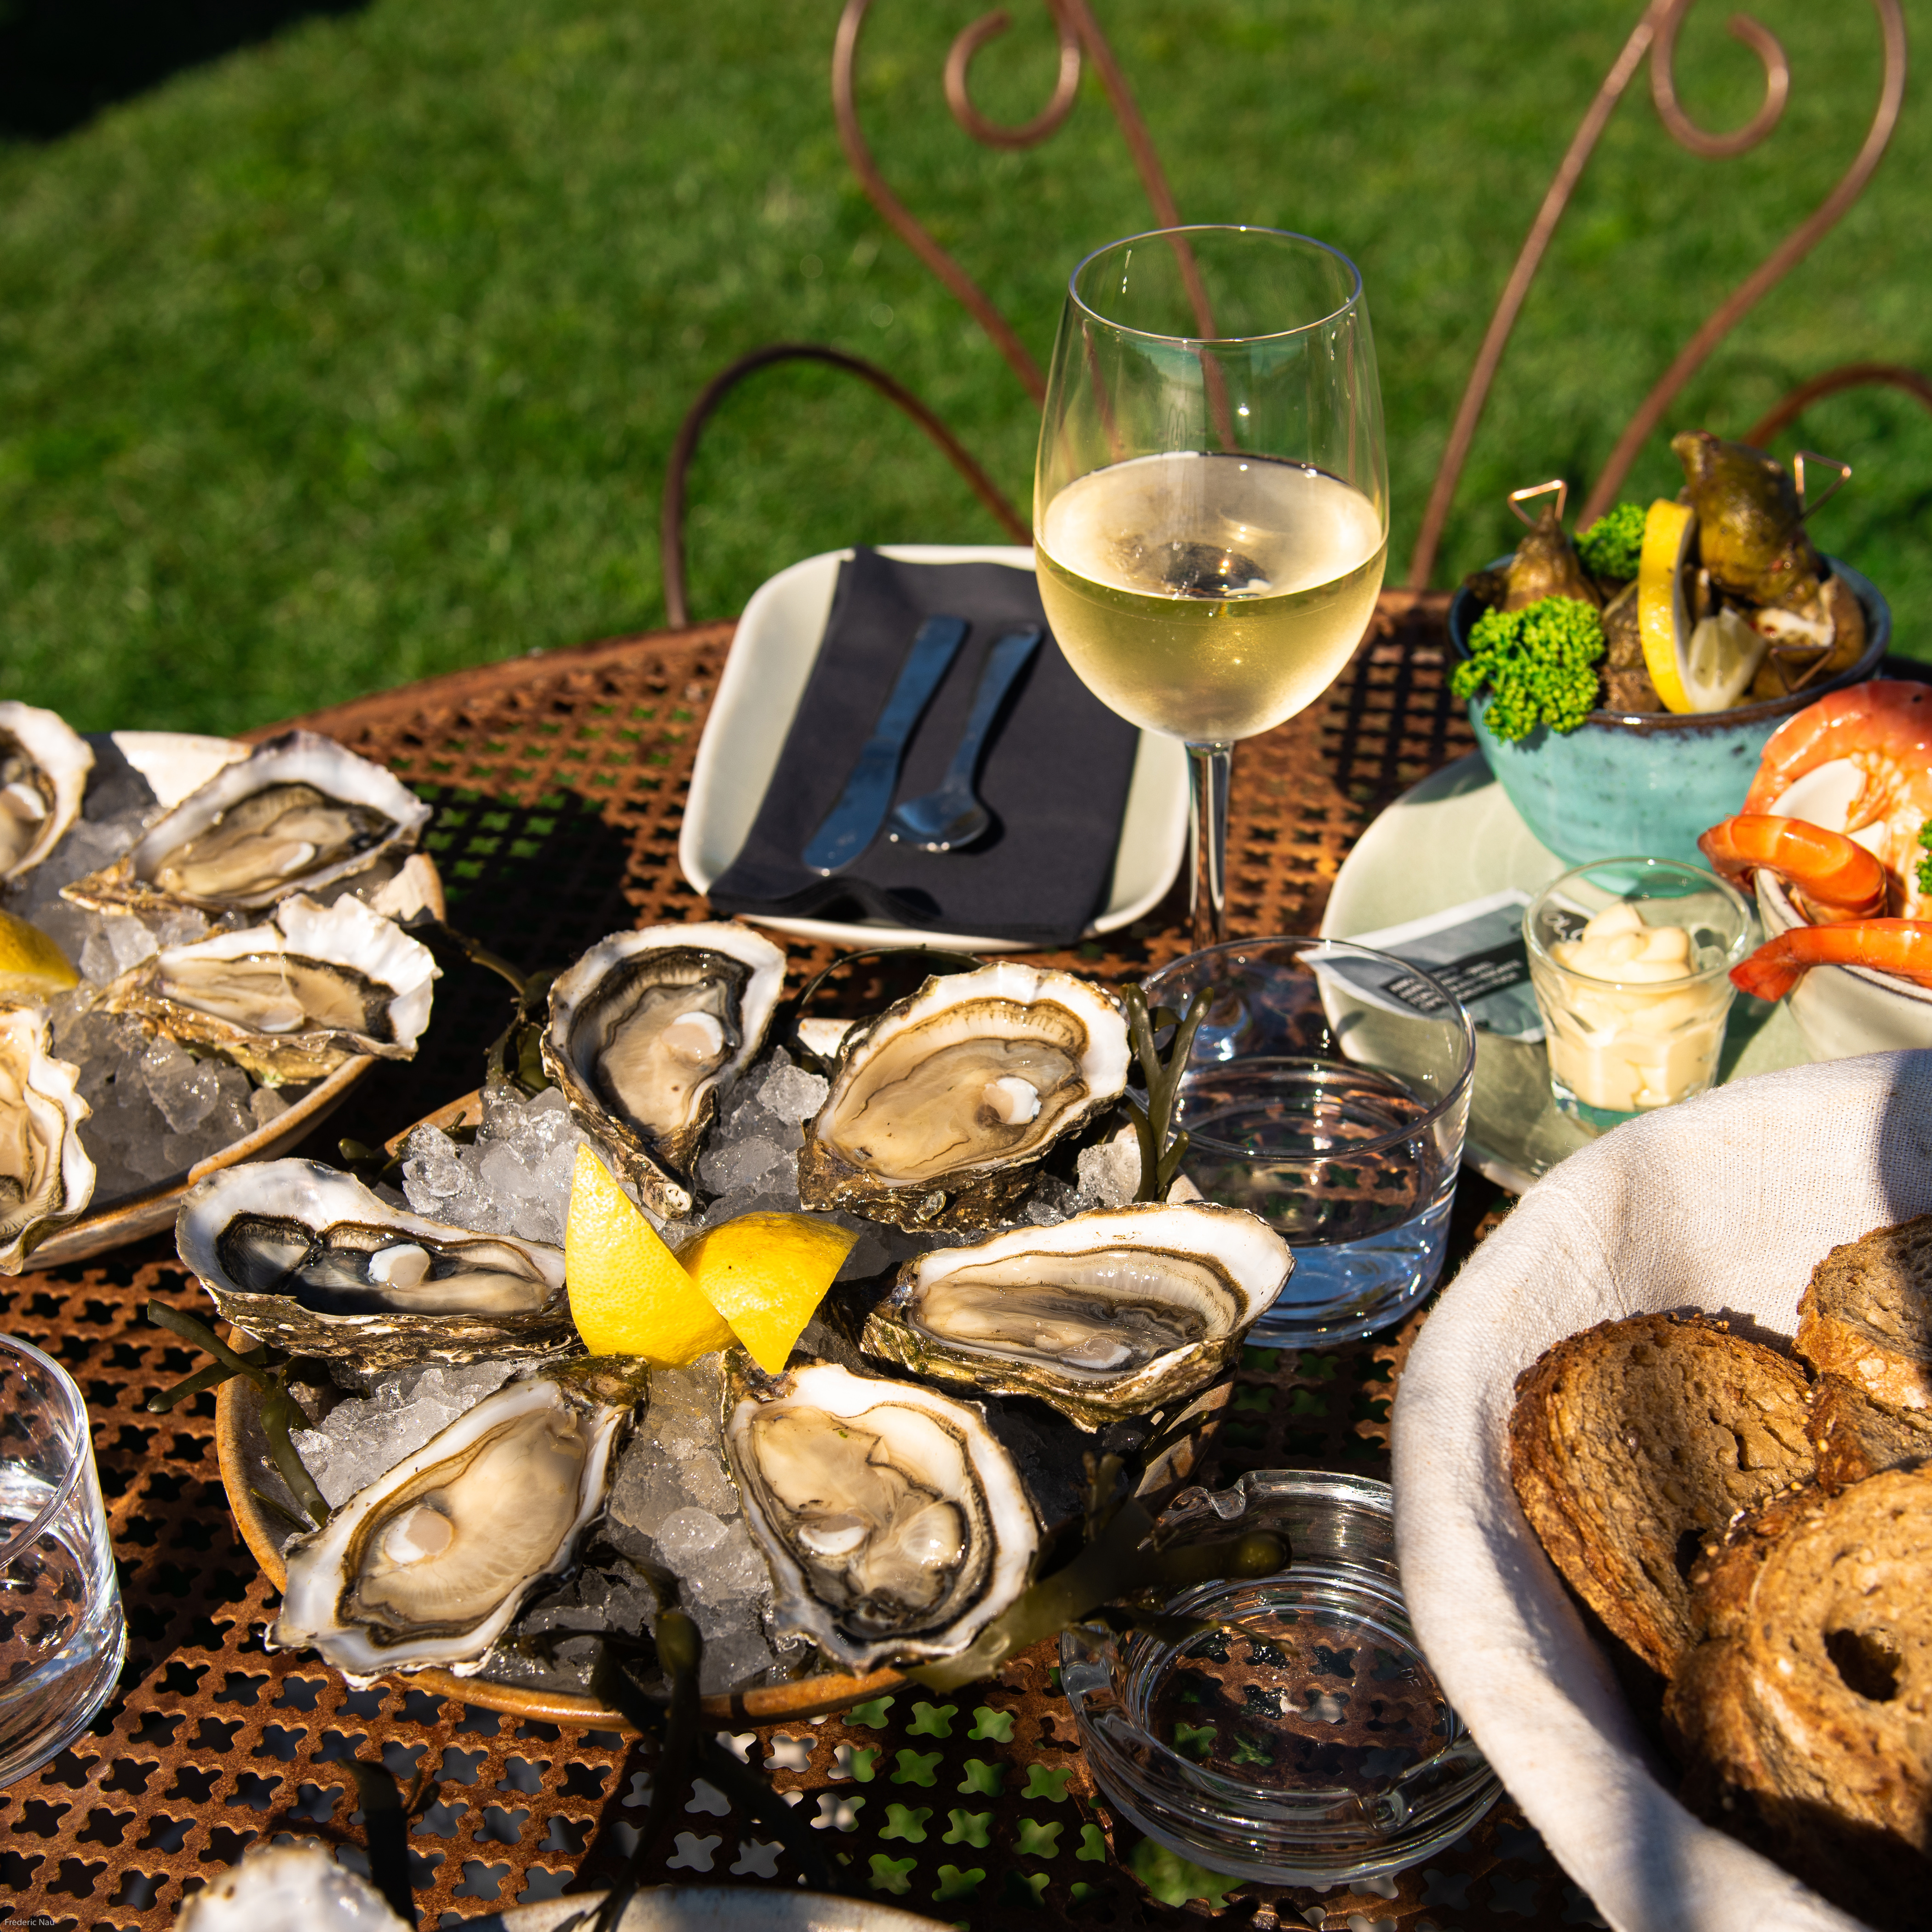 Oysters and Nature